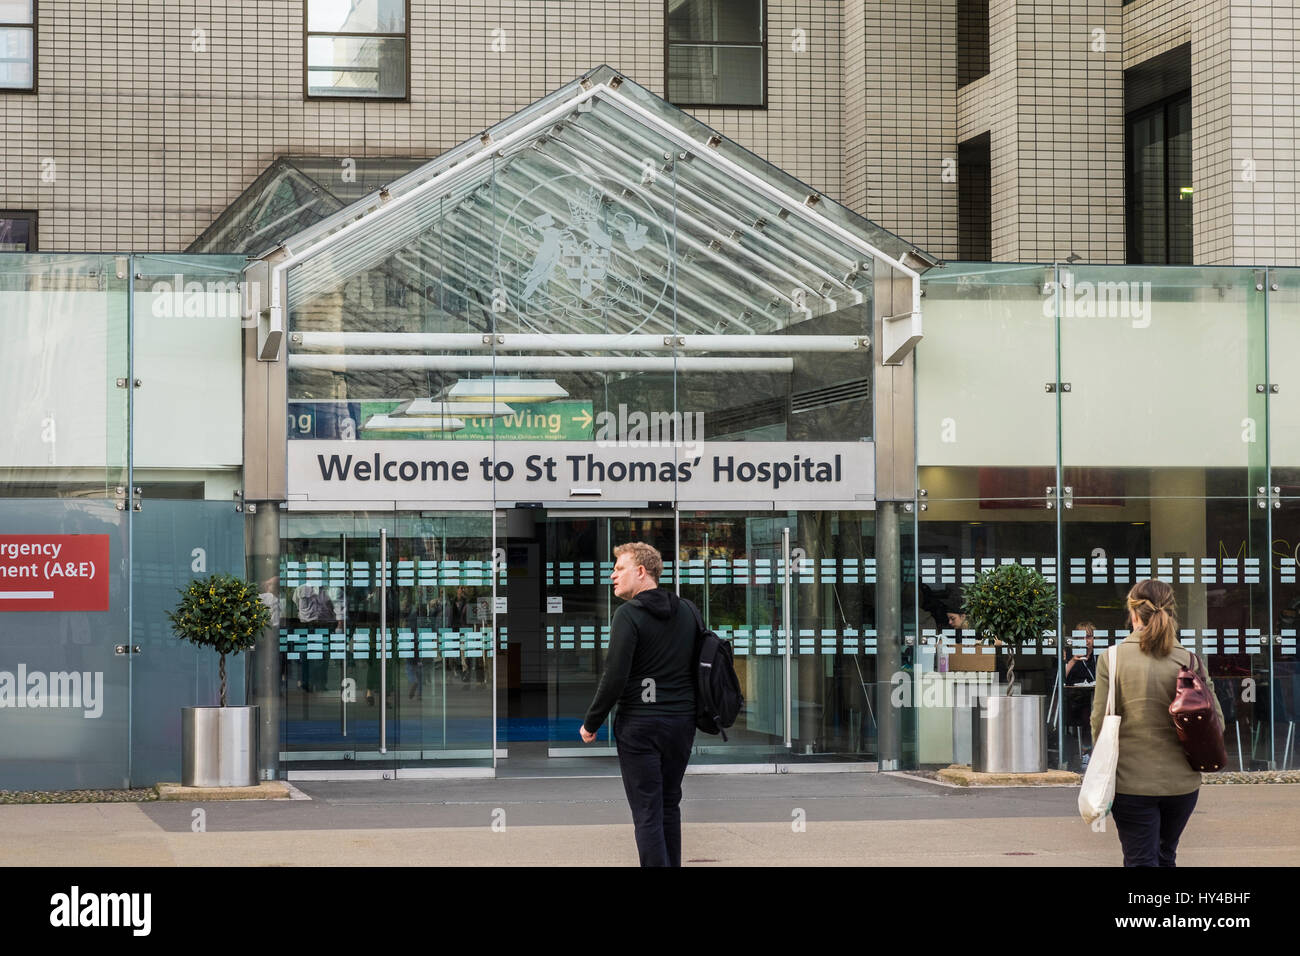 St.Thomas' Hospital, Borough of Lambeth, London, England, U.K. - Stock Image